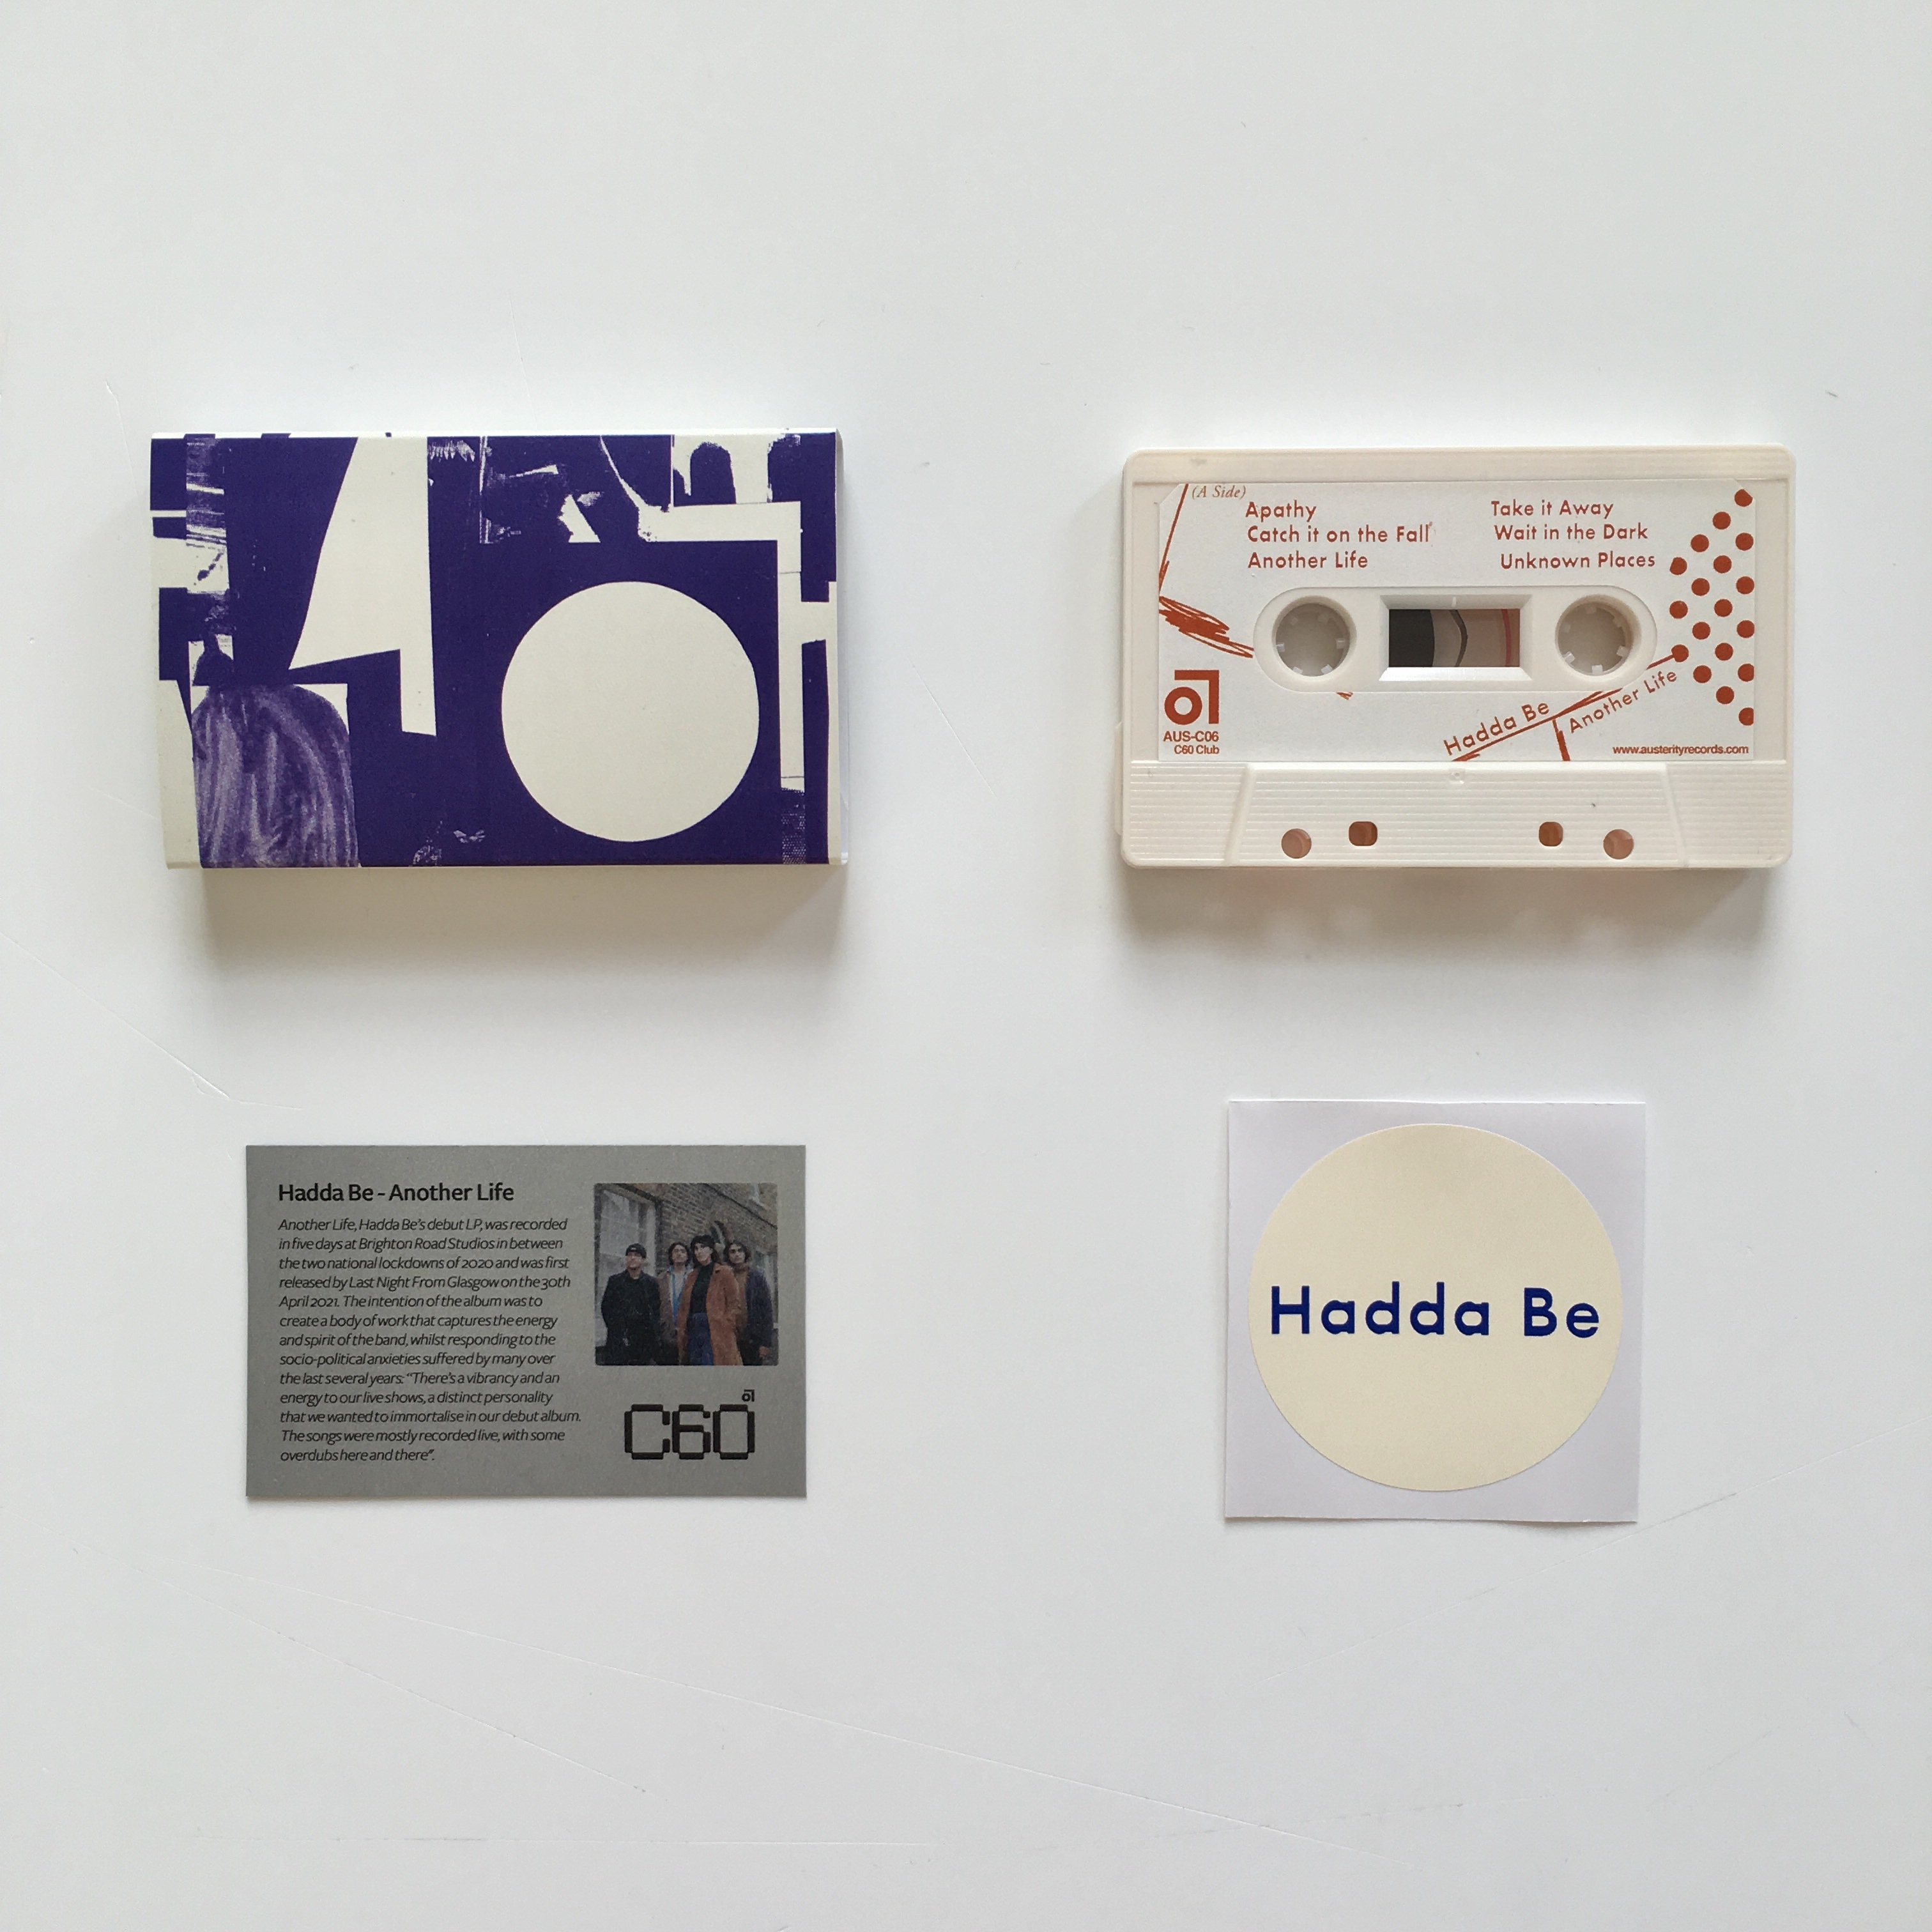 Hadda Be - Another Life (Very limited milky white cassette)